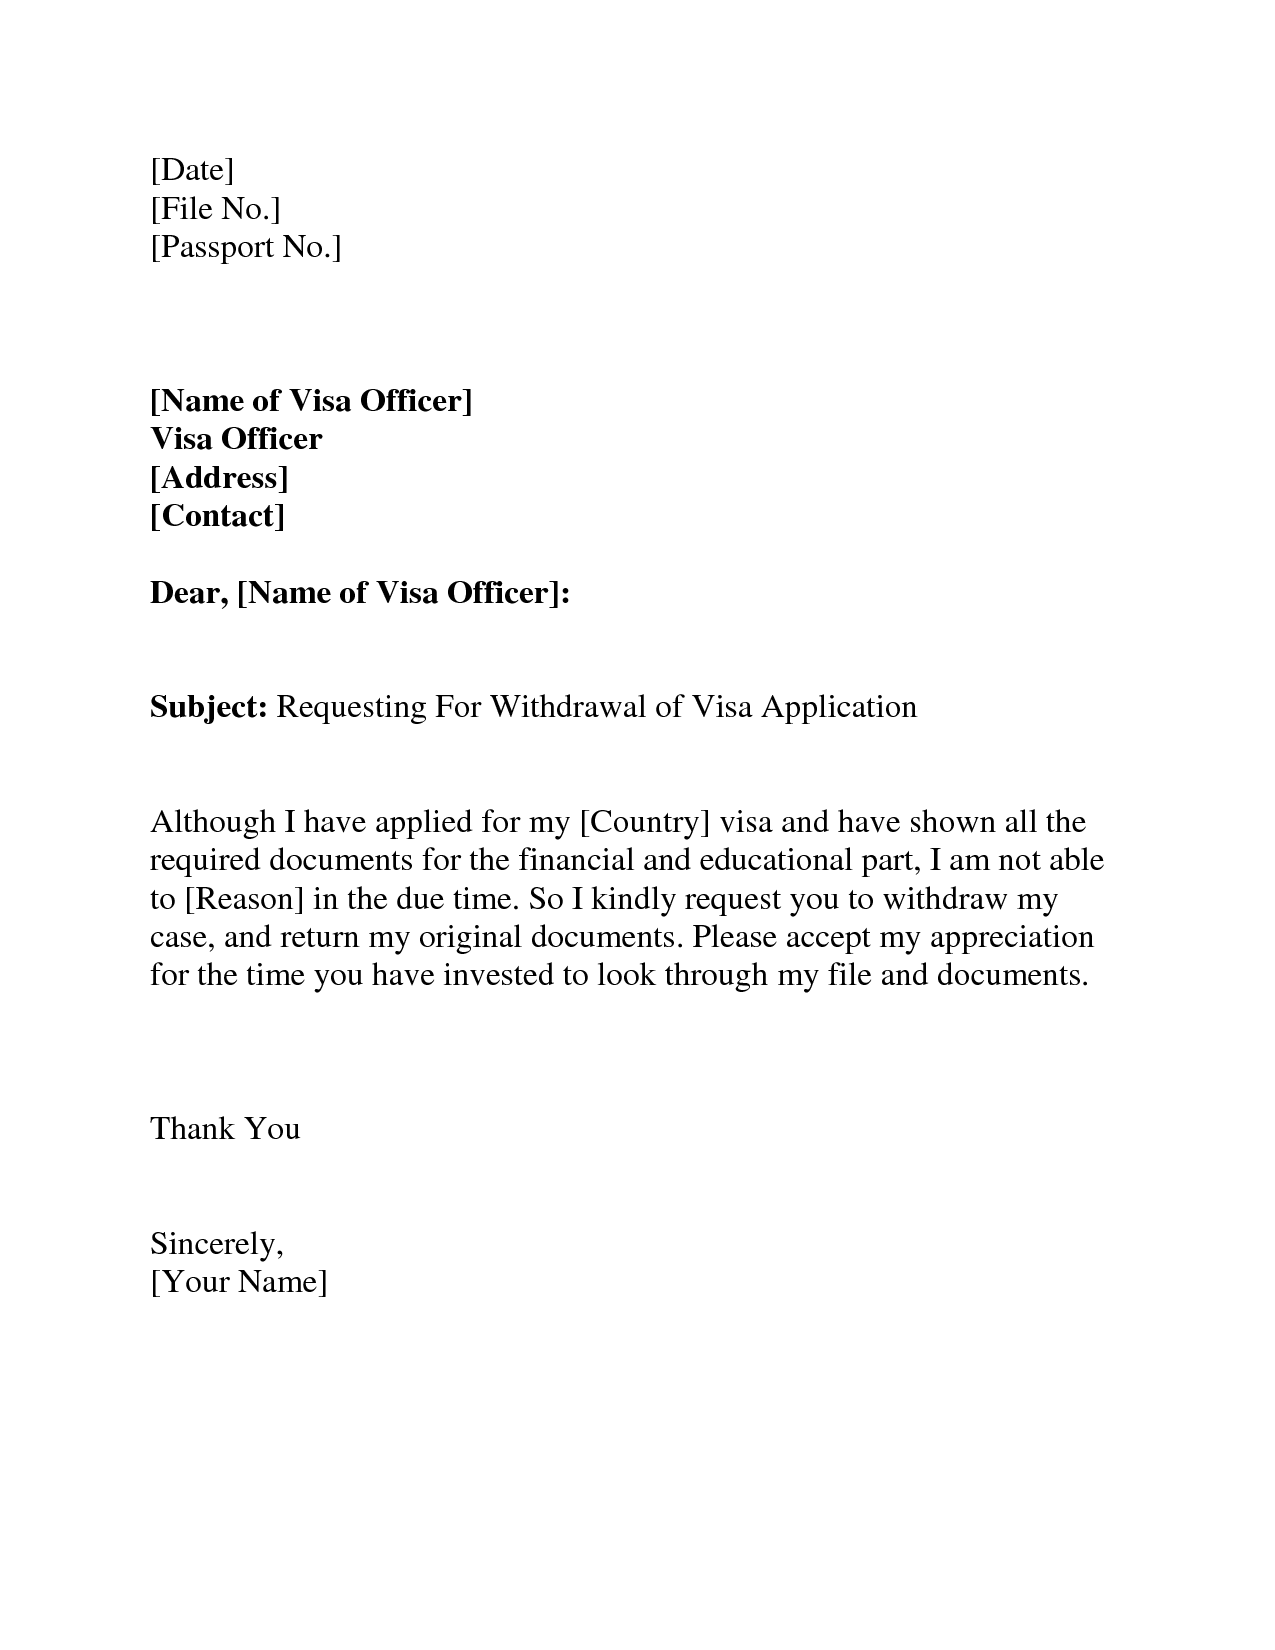 Visa withdrawal letter request letter format letter and emailvisa visa withdrawal letter request letter format letter and emailvisa invitation letter to a friend example application altavistaventures Images